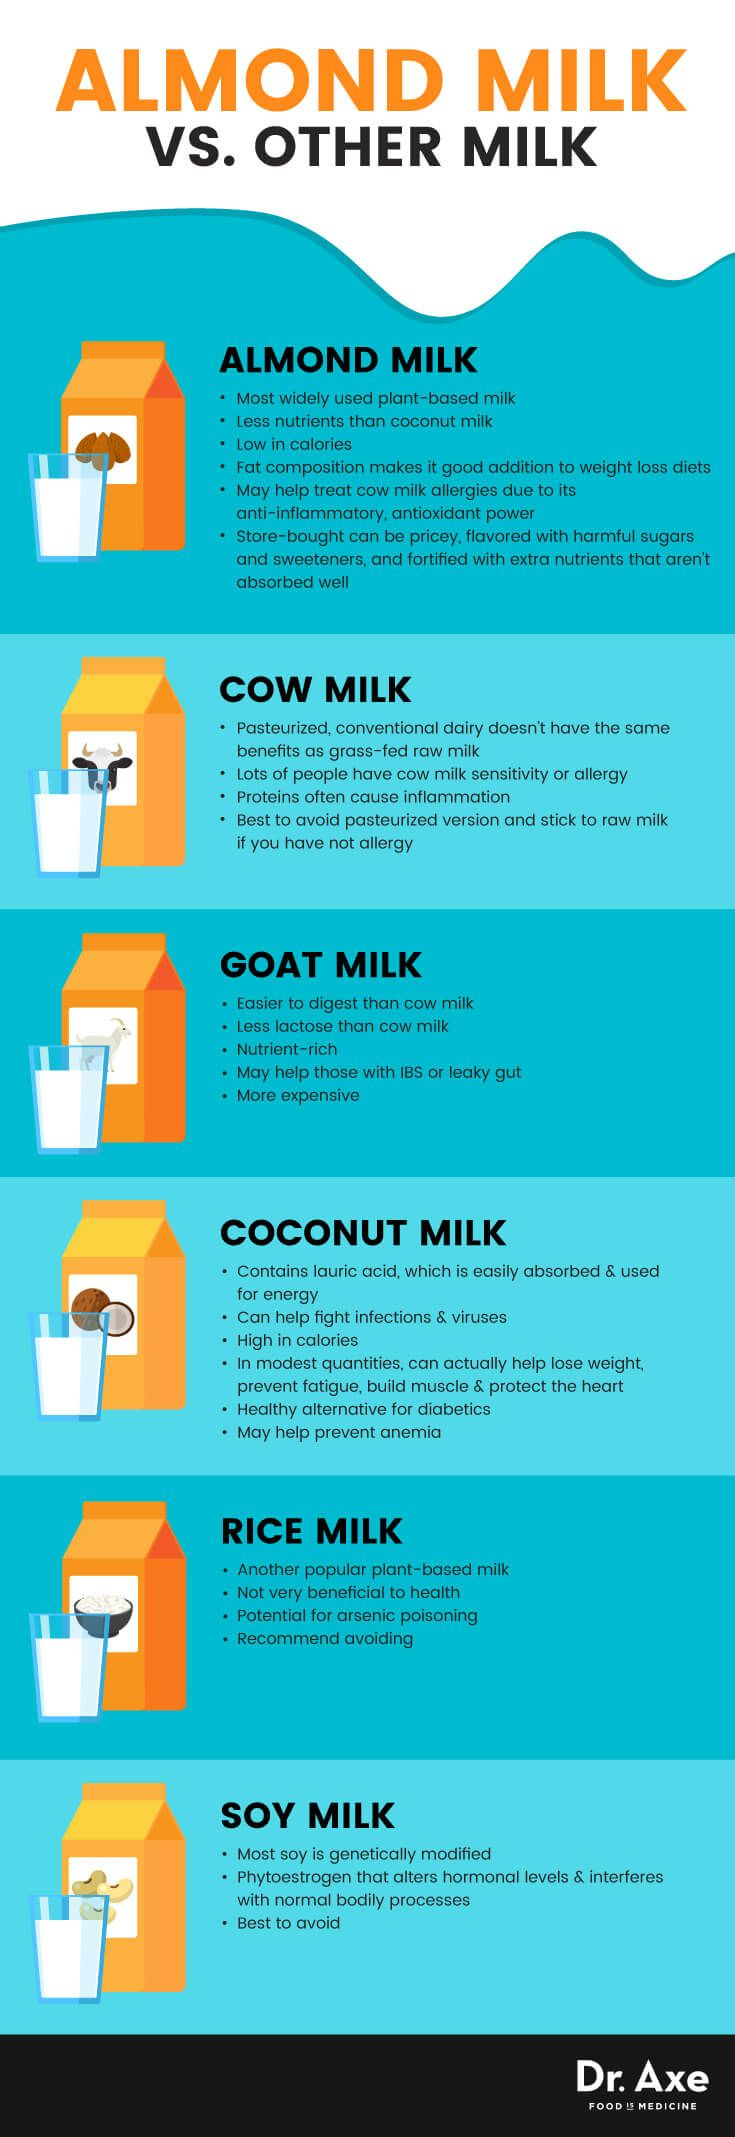 Almond milk vs. other milk - Dr. Axe http://www.draxe.com #health #holistic #natural